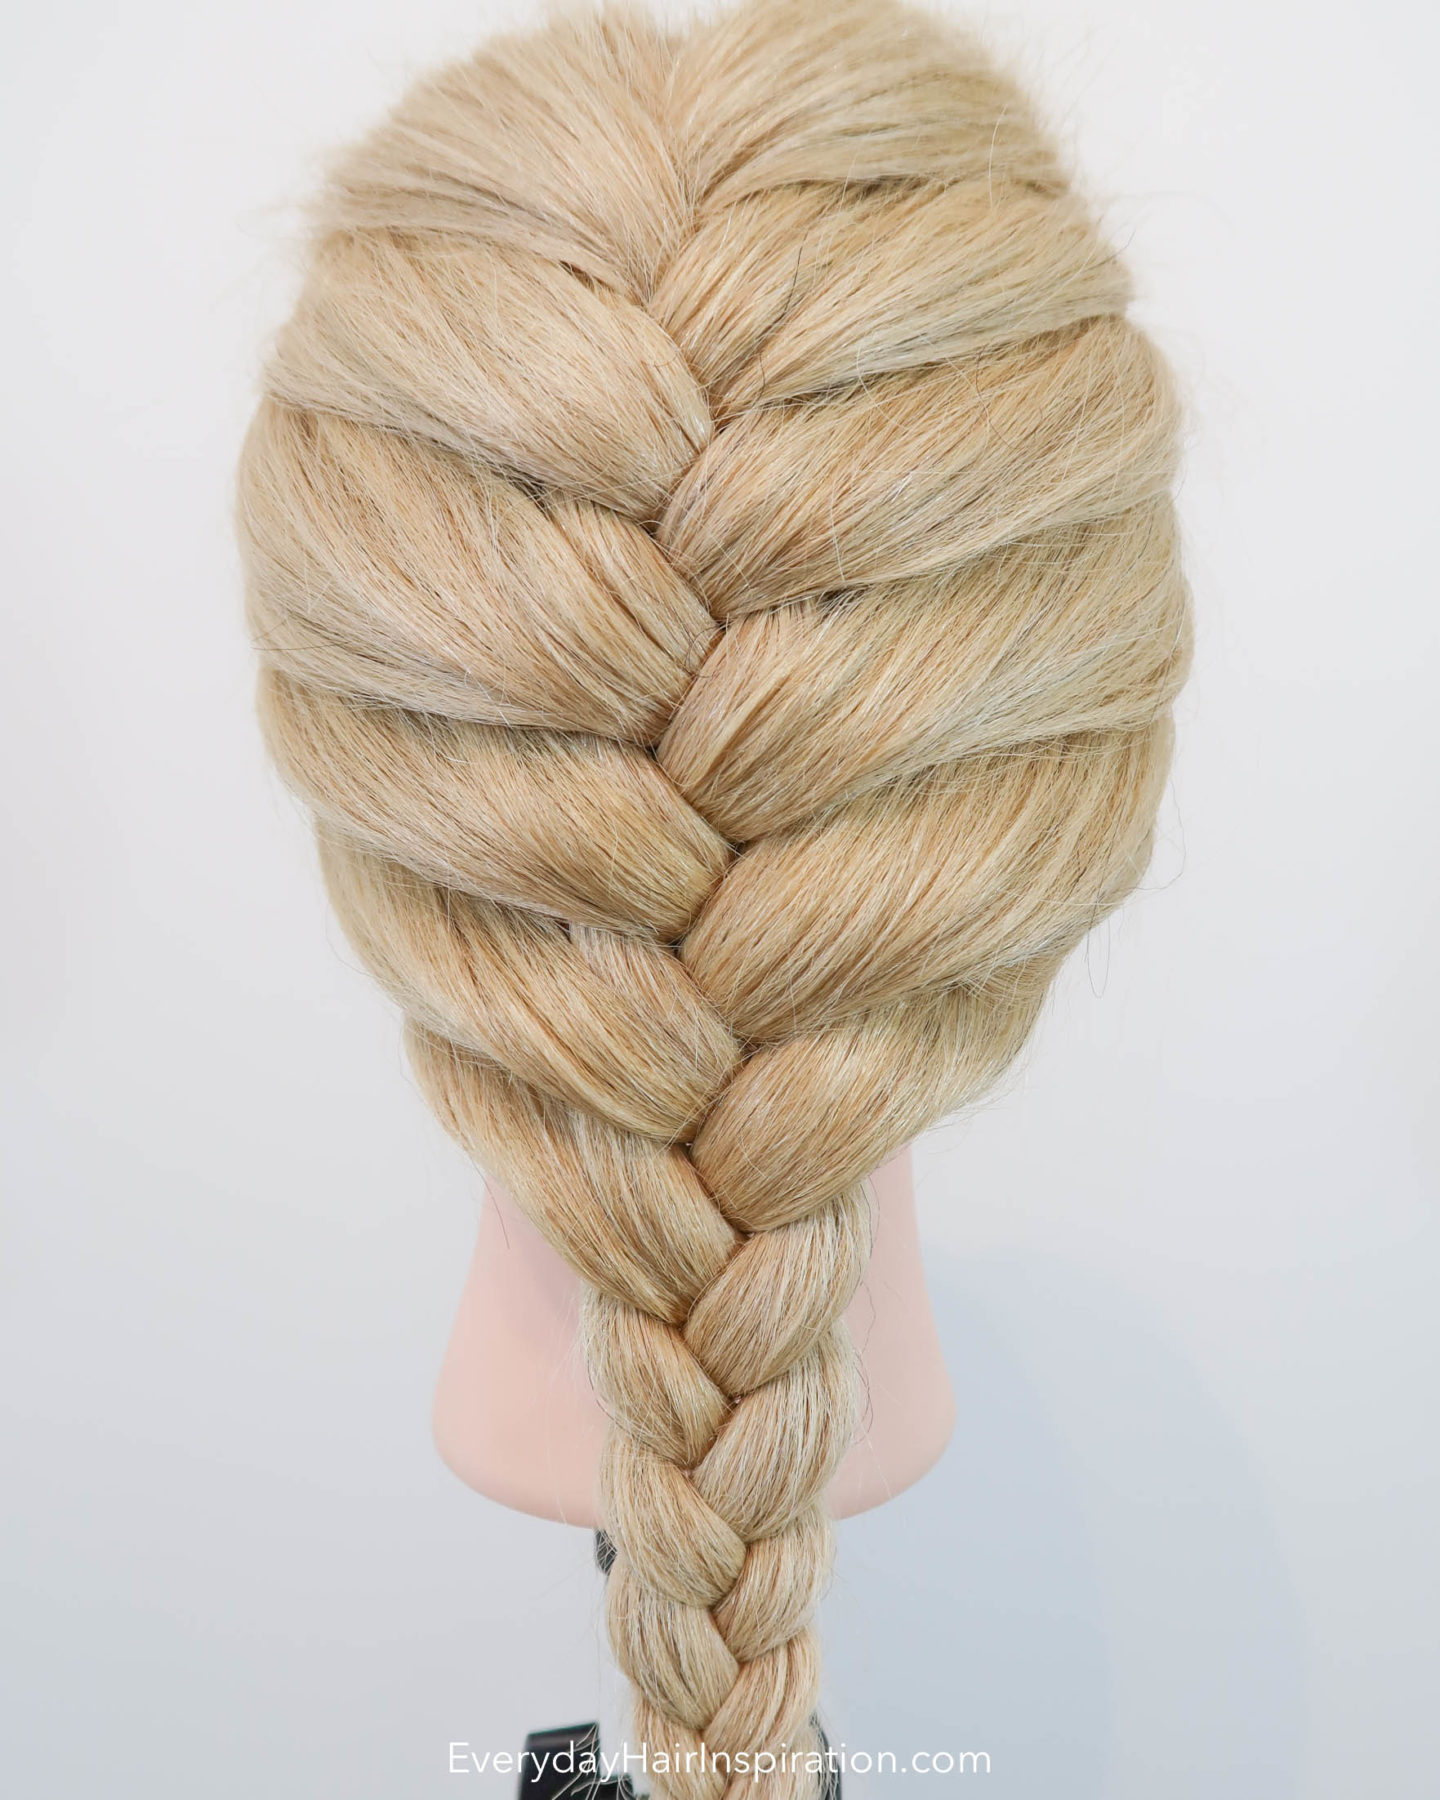 Blonde hairdresser doll with a single French braid